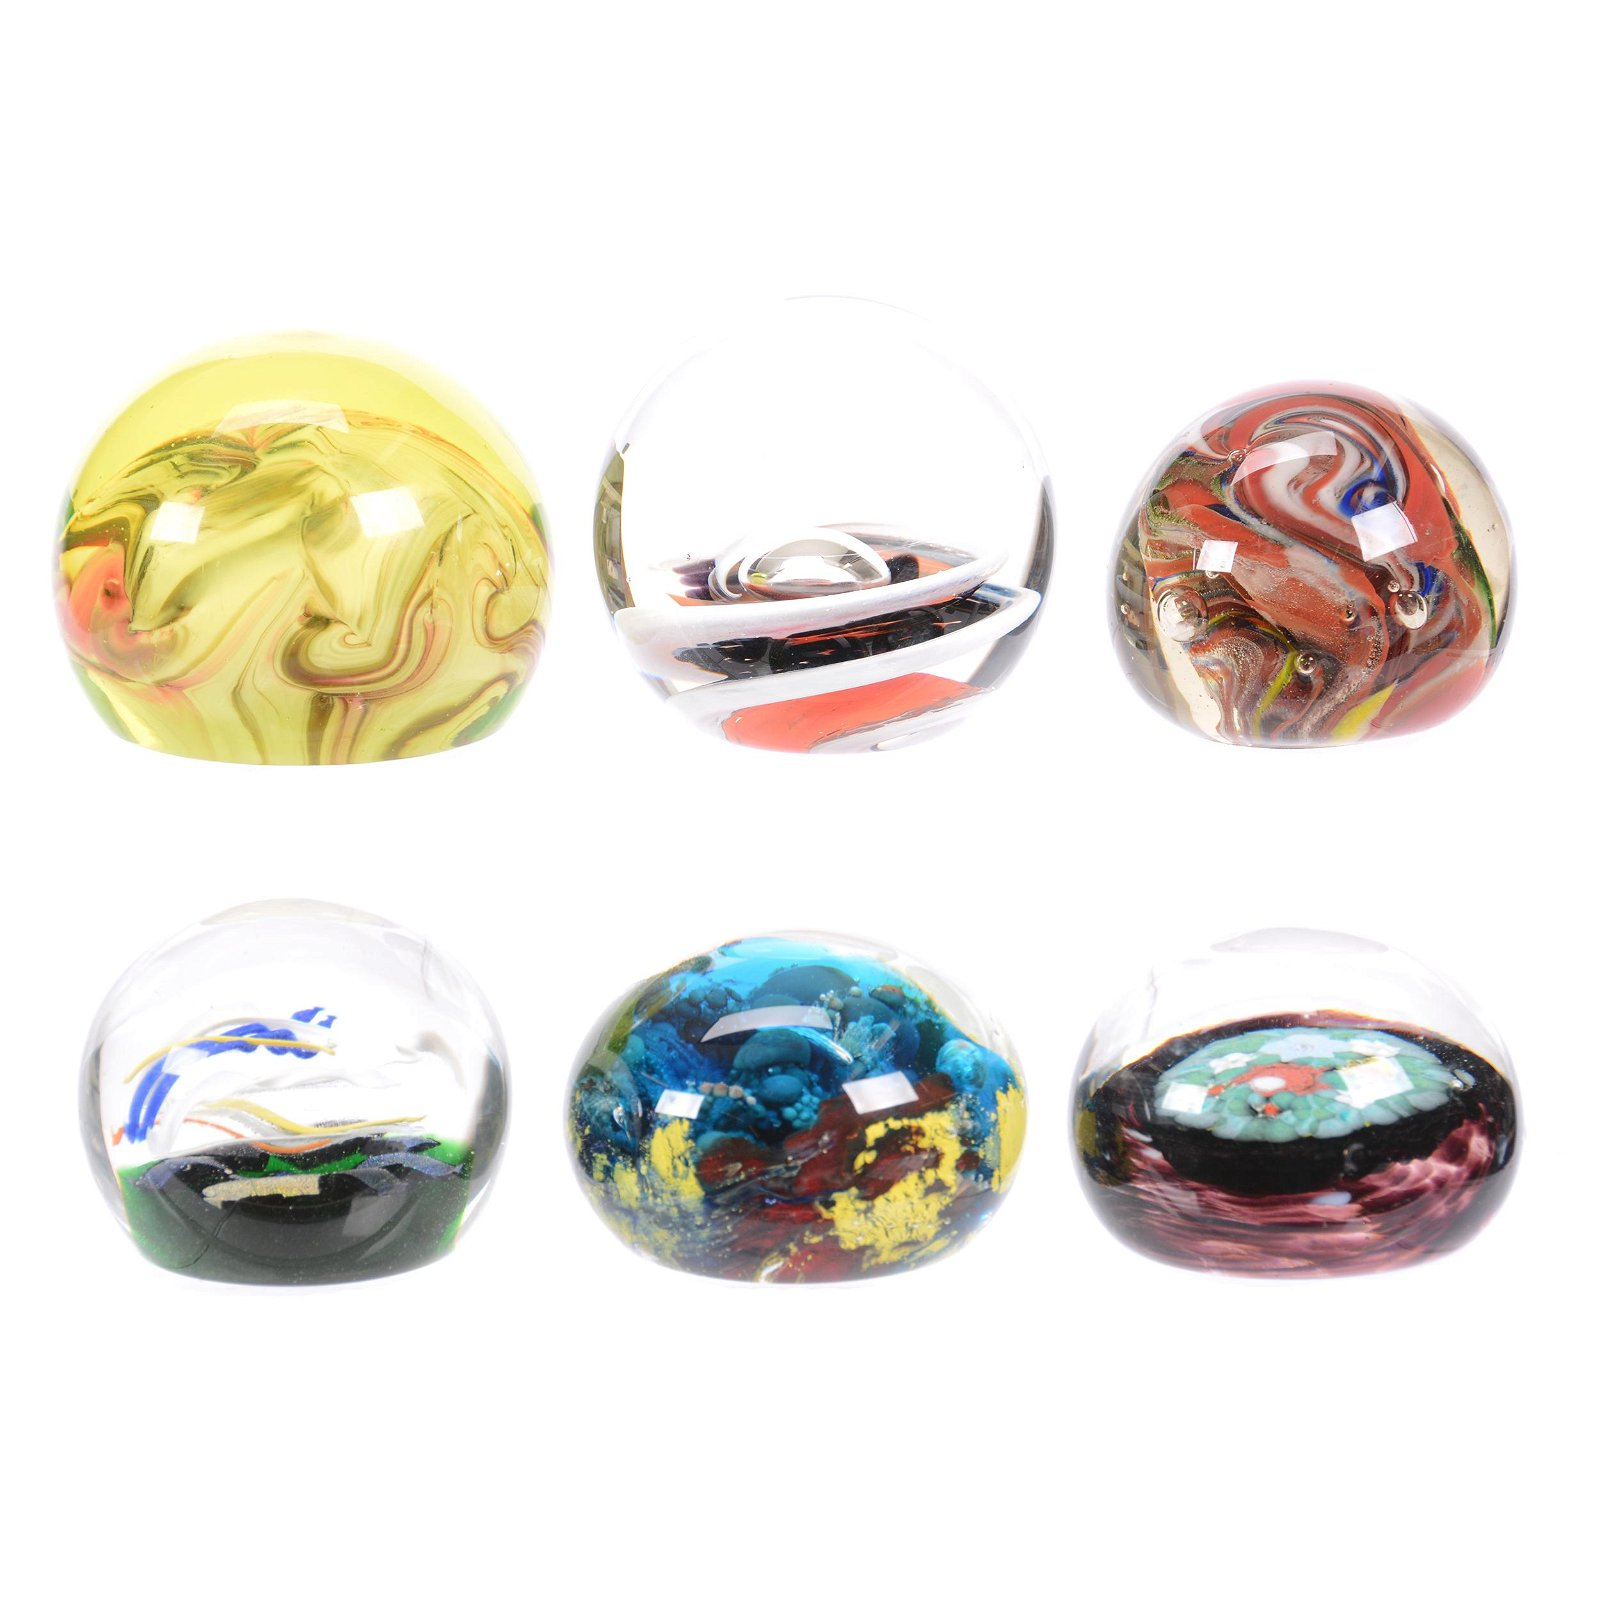 """(6) Paperweights, Sizes From 3.5"""" To 2.75"""" Diameter"""